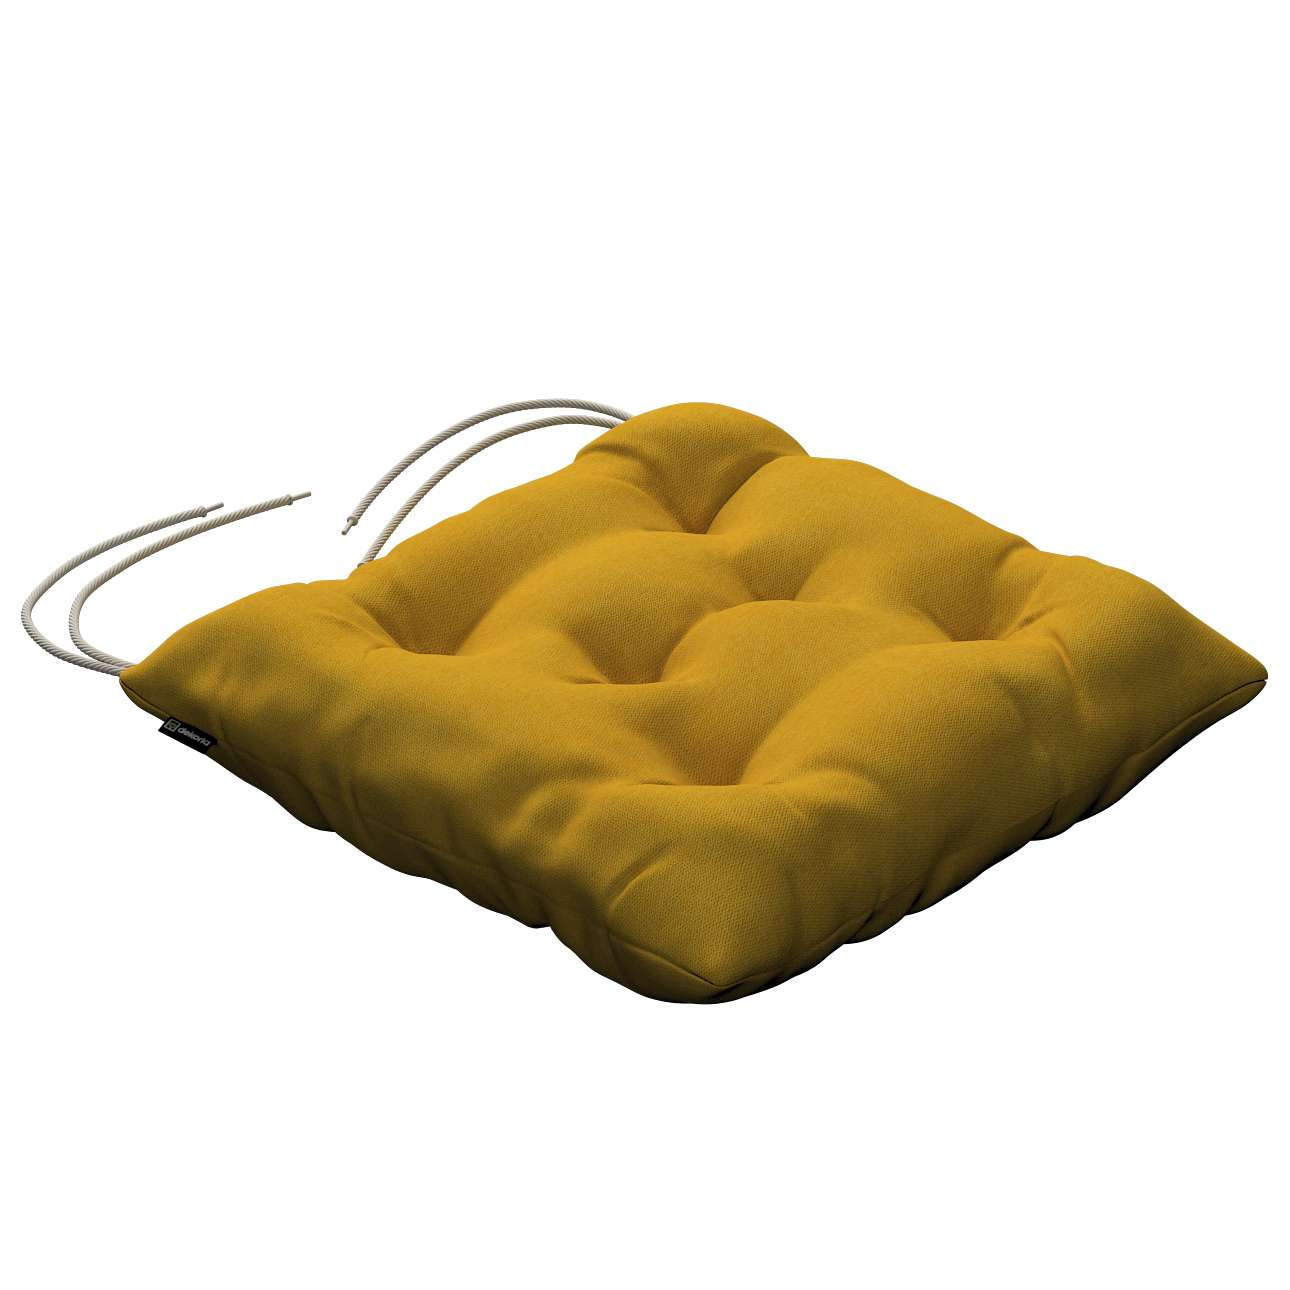 Jacek seat pad with ties 40 x 40 x 8 cm (16 x 16 x 3 inch) in collection Etna, fabric: 705-04